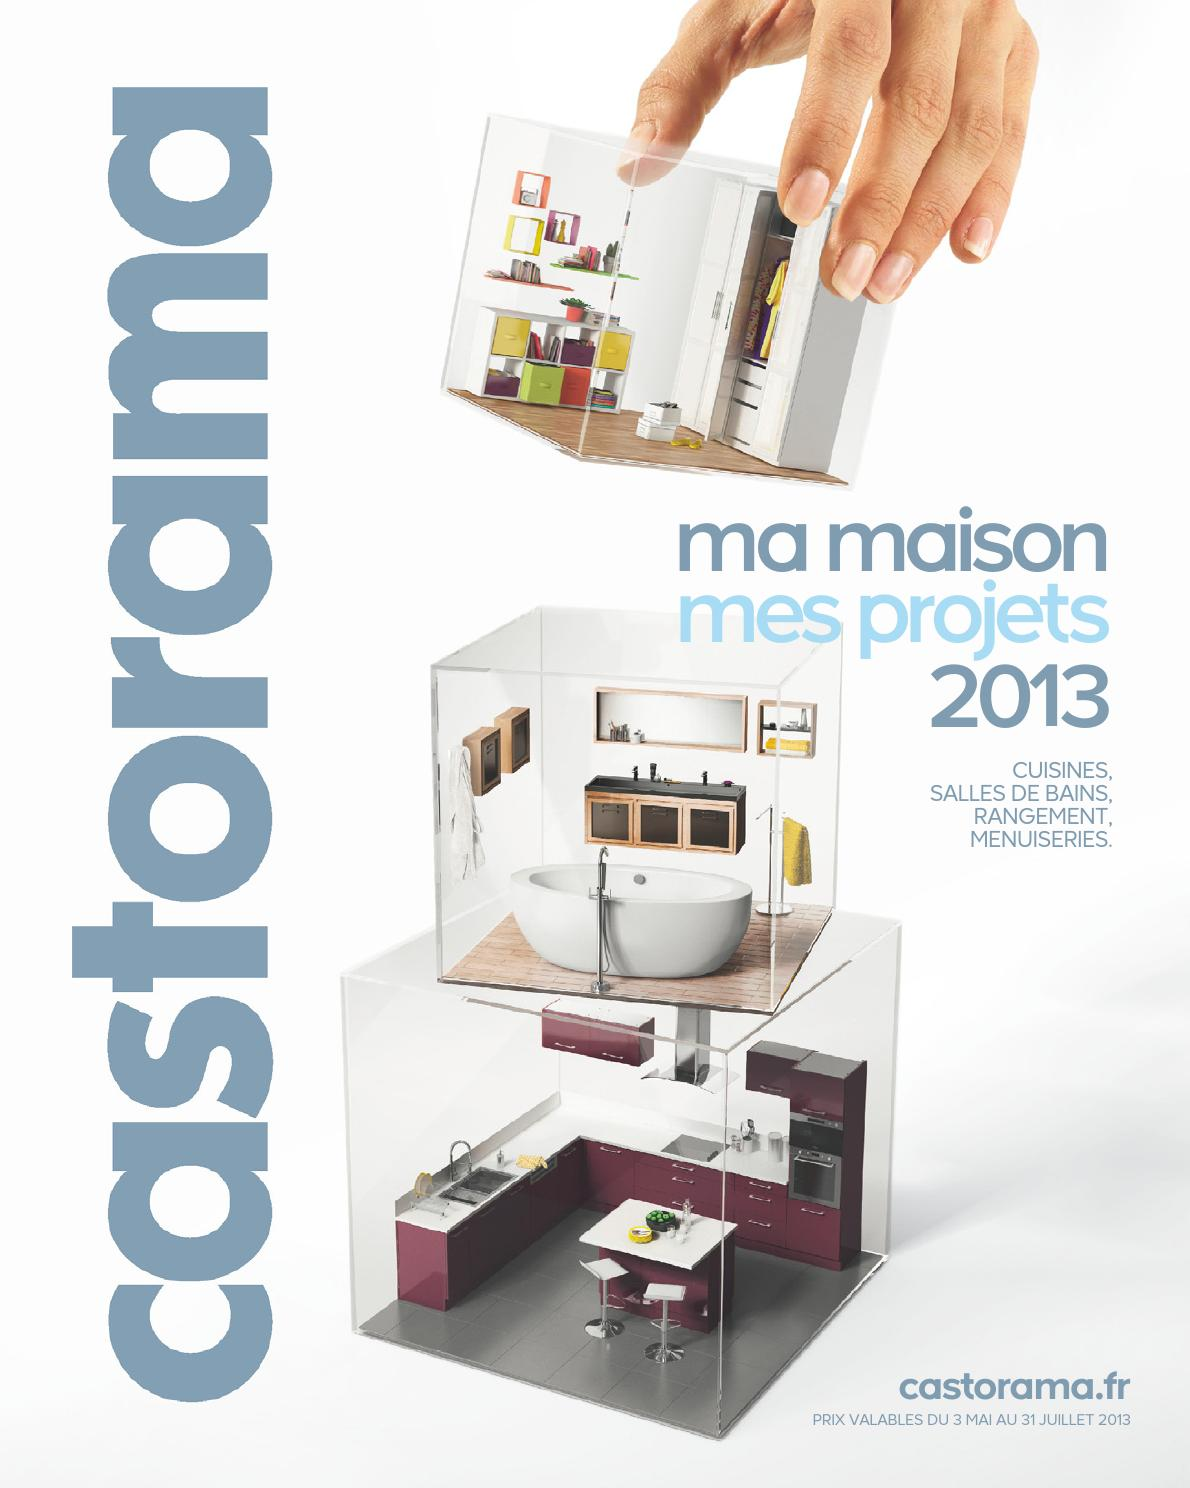 Mousse Emballage Castorama Catalogue Castorama Maison By Margot Ziegler Issuu